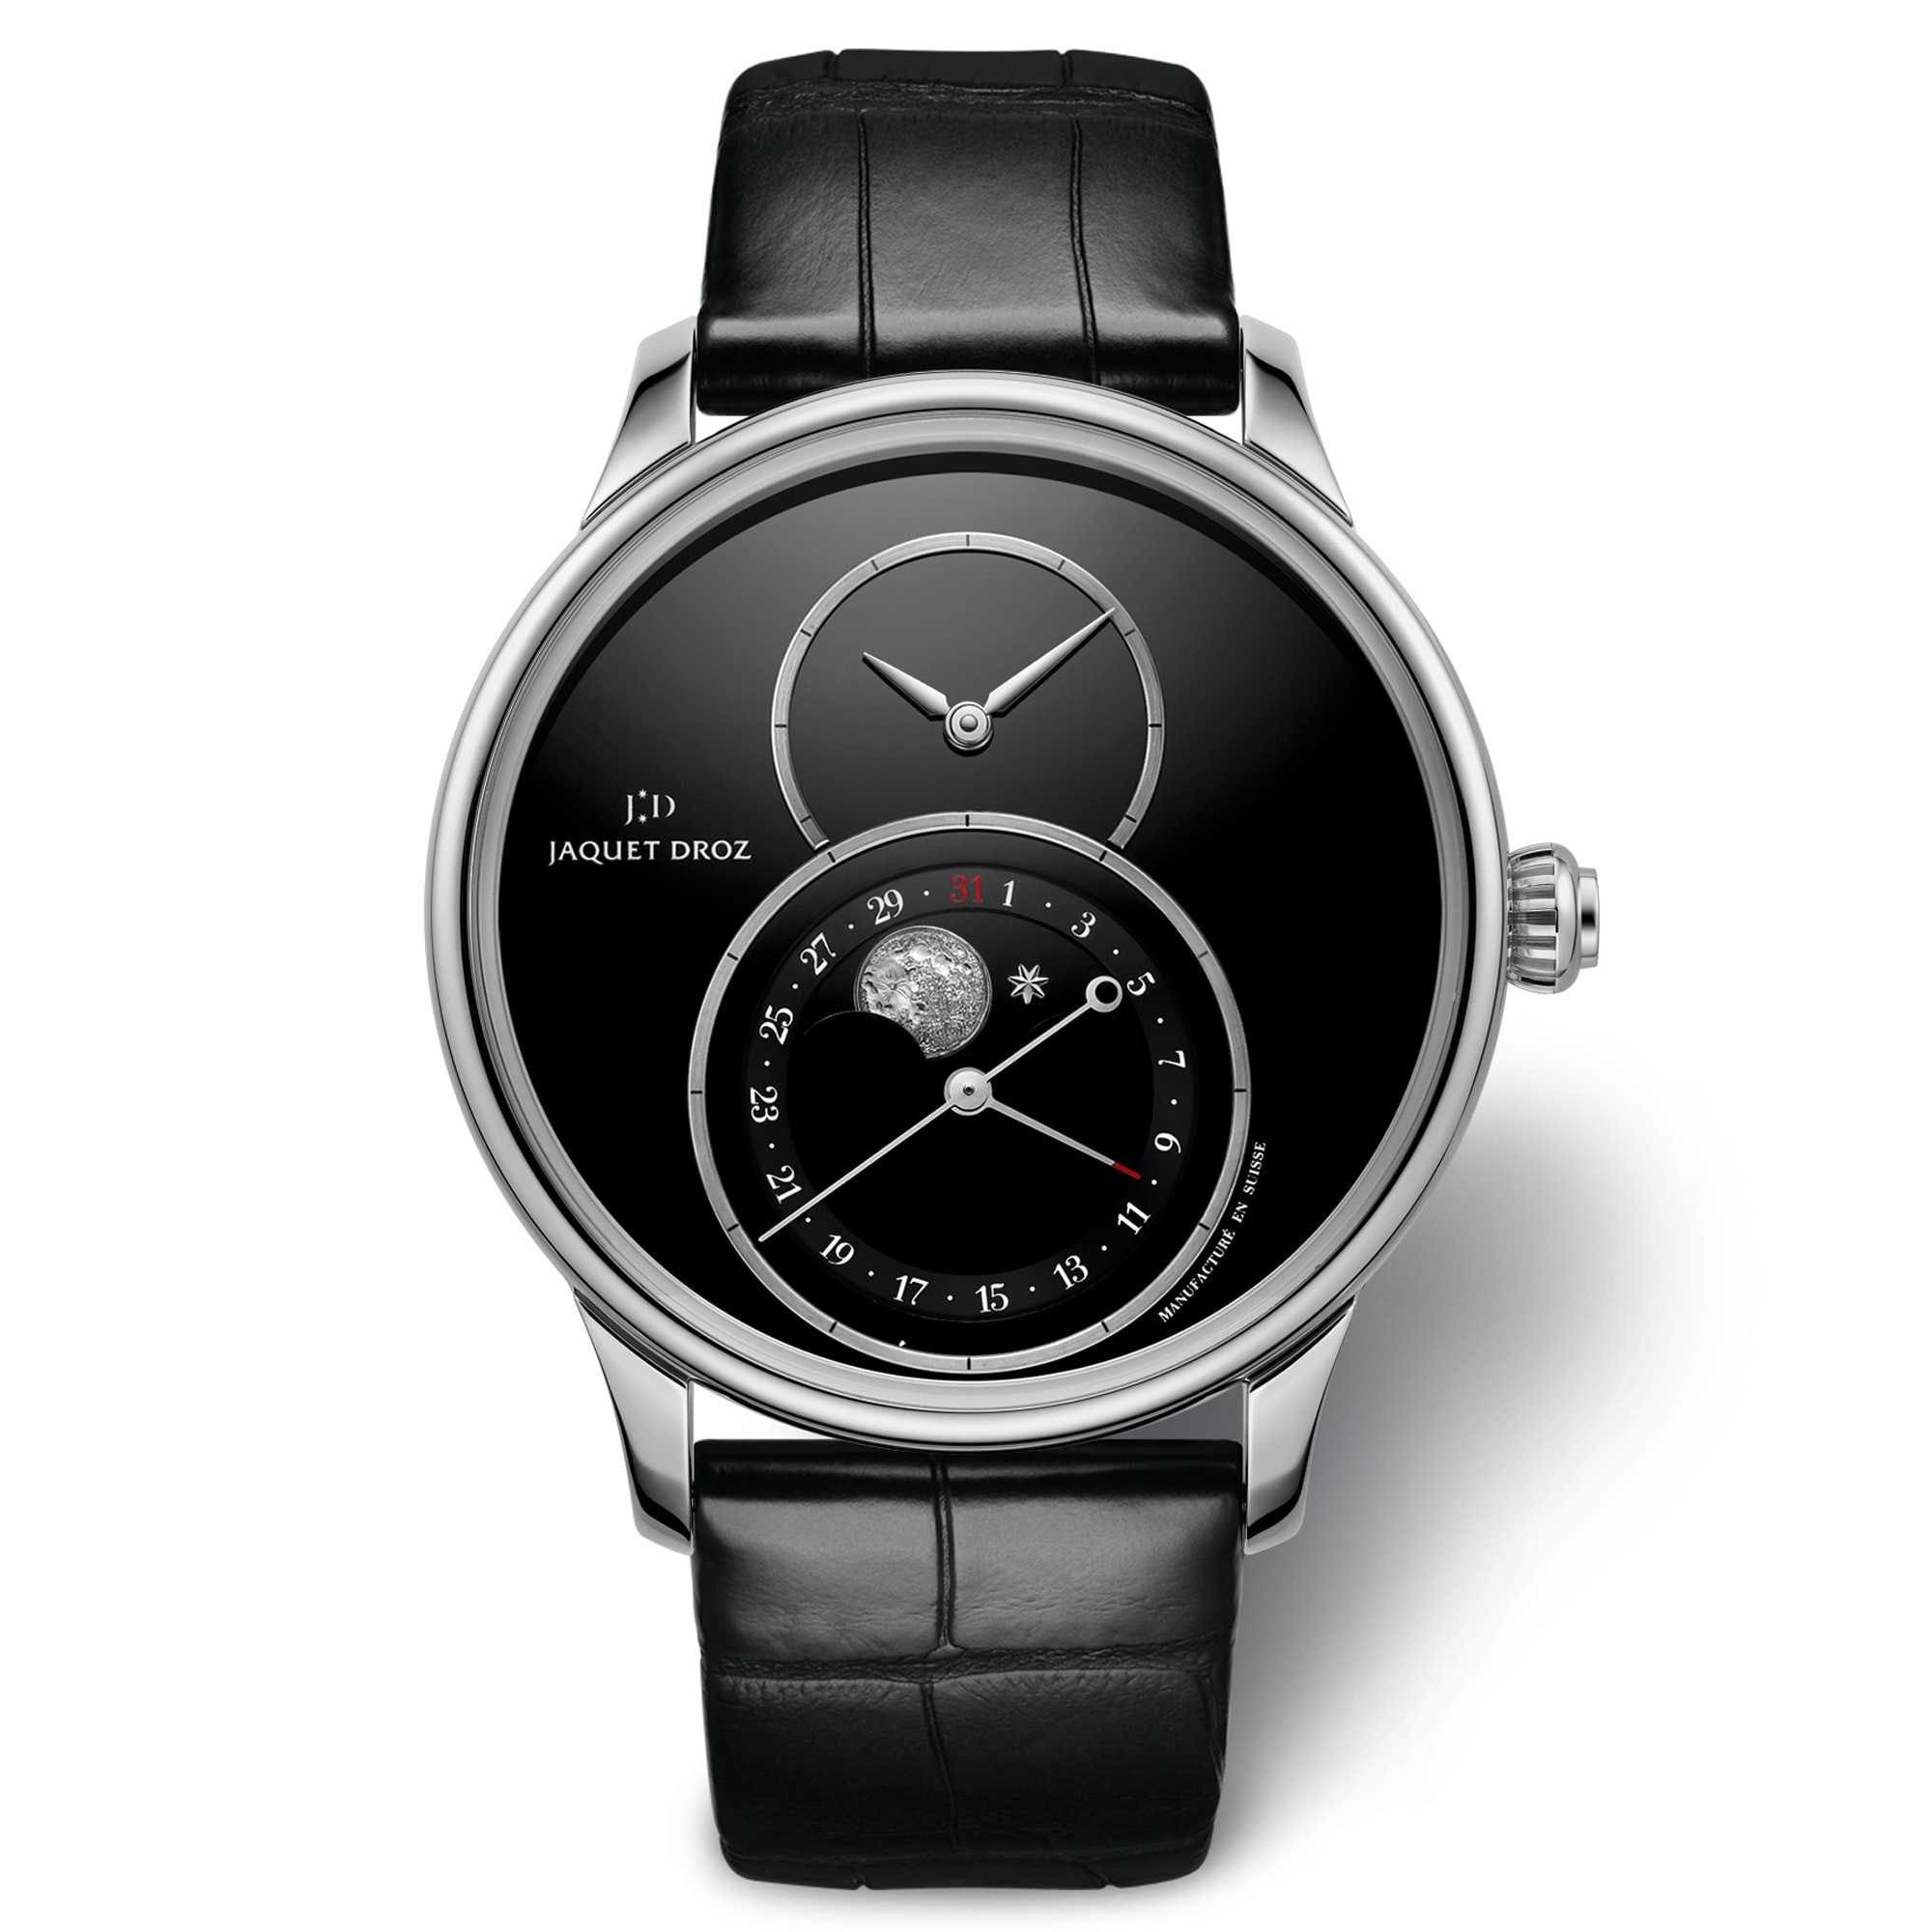 There is also a steel version of this watch with an onyx dial and onyx moonphase disc. Introducing: The Jaquet Droz Grande Seconde Moon Phase Introducing: The Jaquet Droz Grande Seconde Moon Phase jd 03